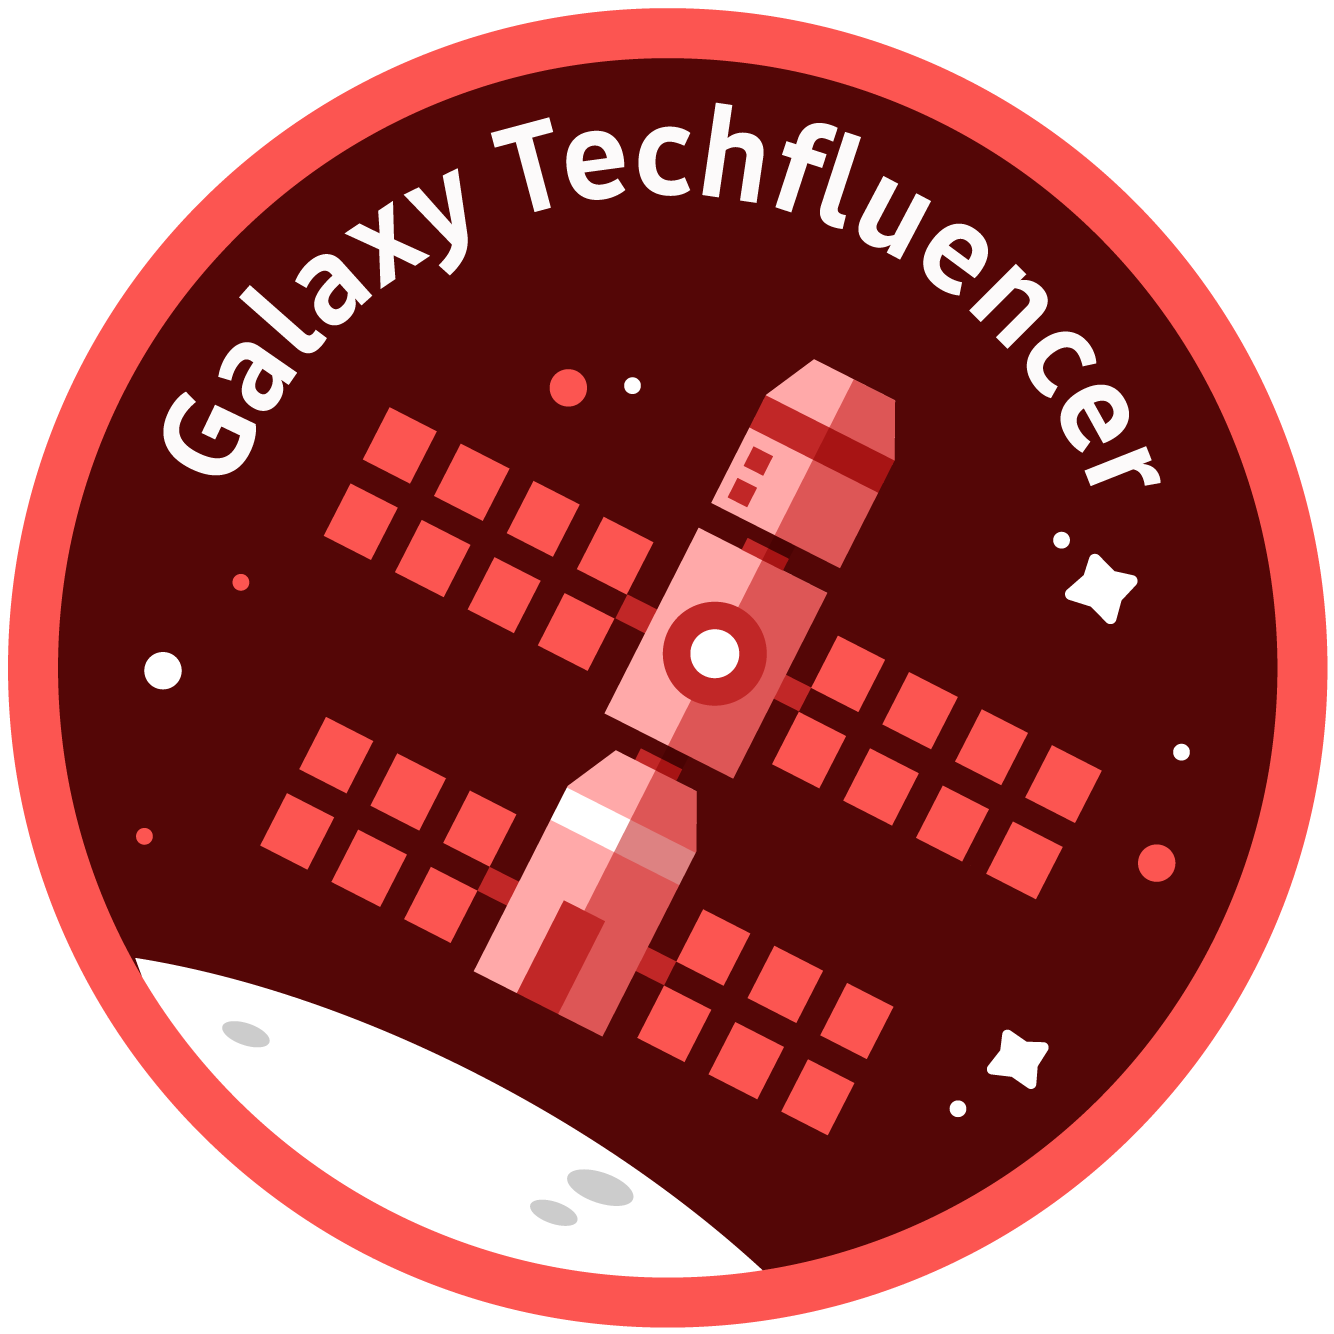 Galaxy Techfluencer